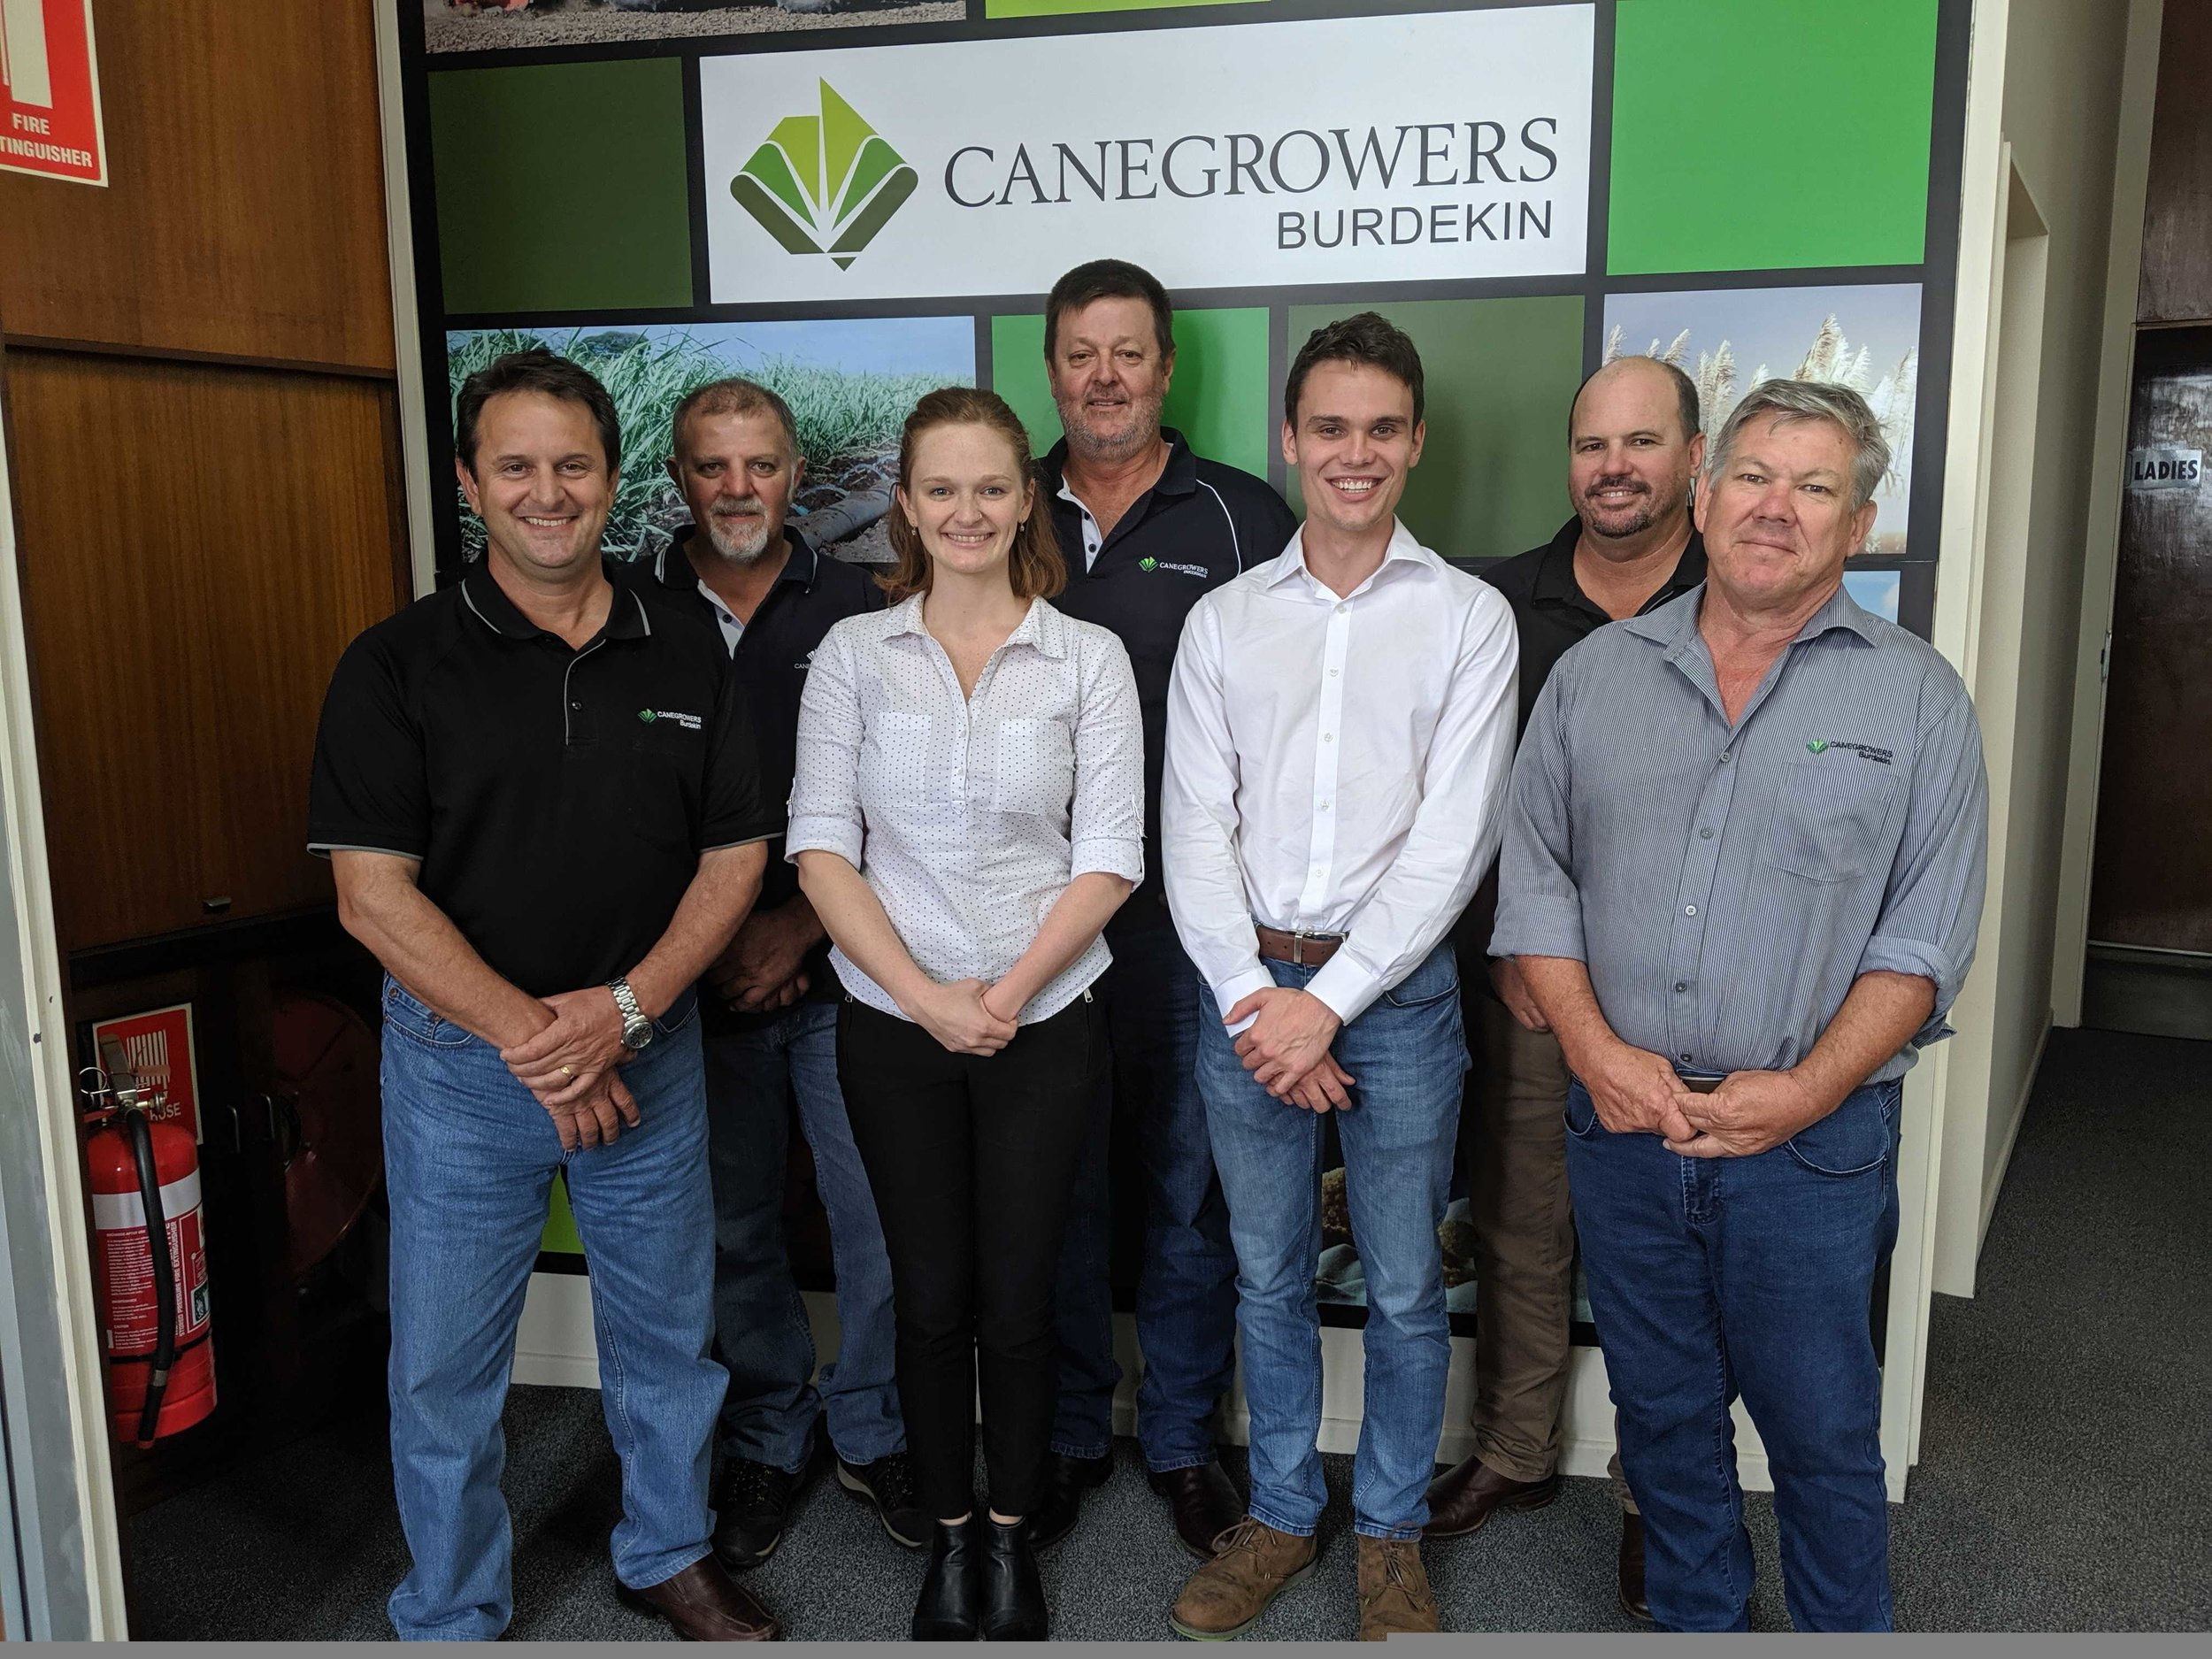 Cane Changer Team with CANEGROWERS Burdekin Board Representatives